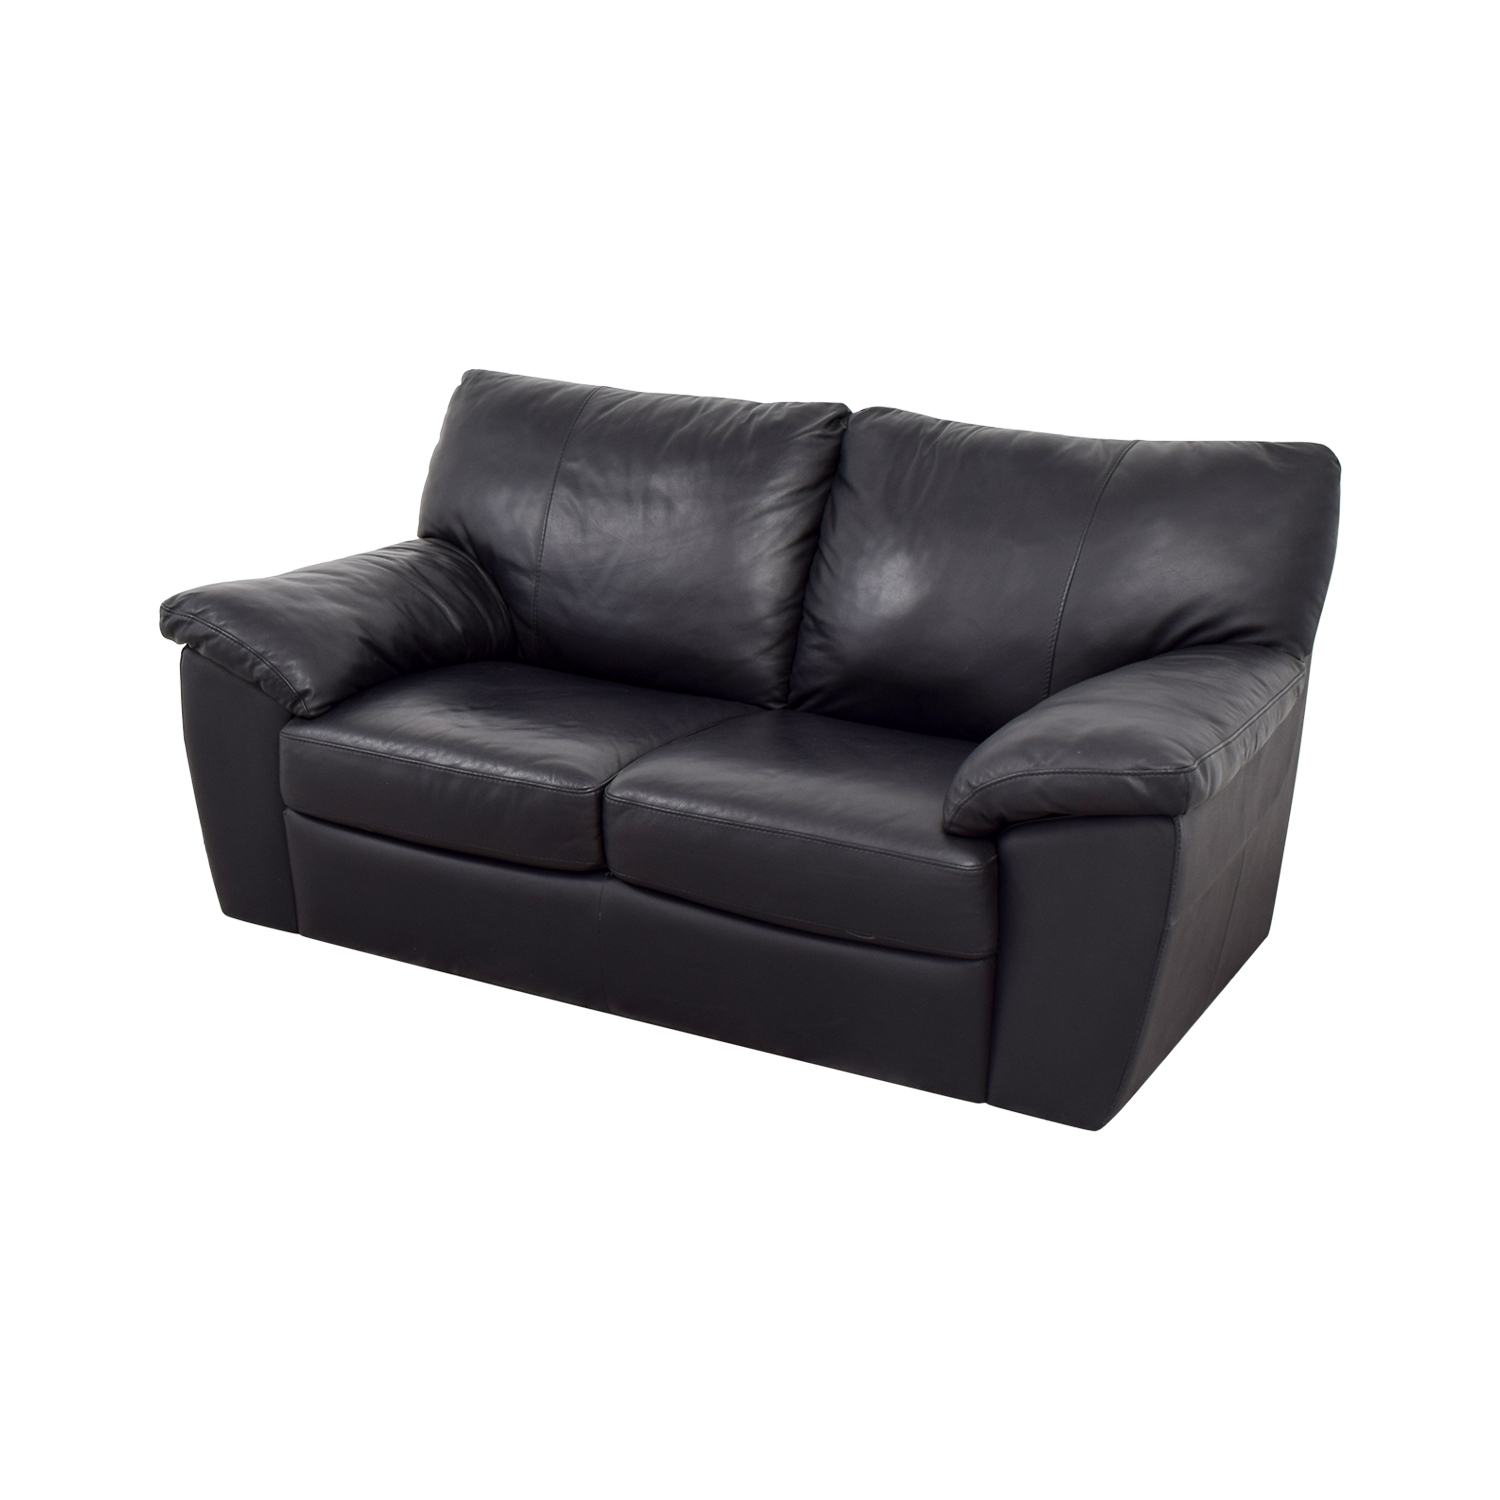 Beautiful ... IKEA IKEA Black Leather Two Cushion Couch Sofas ...